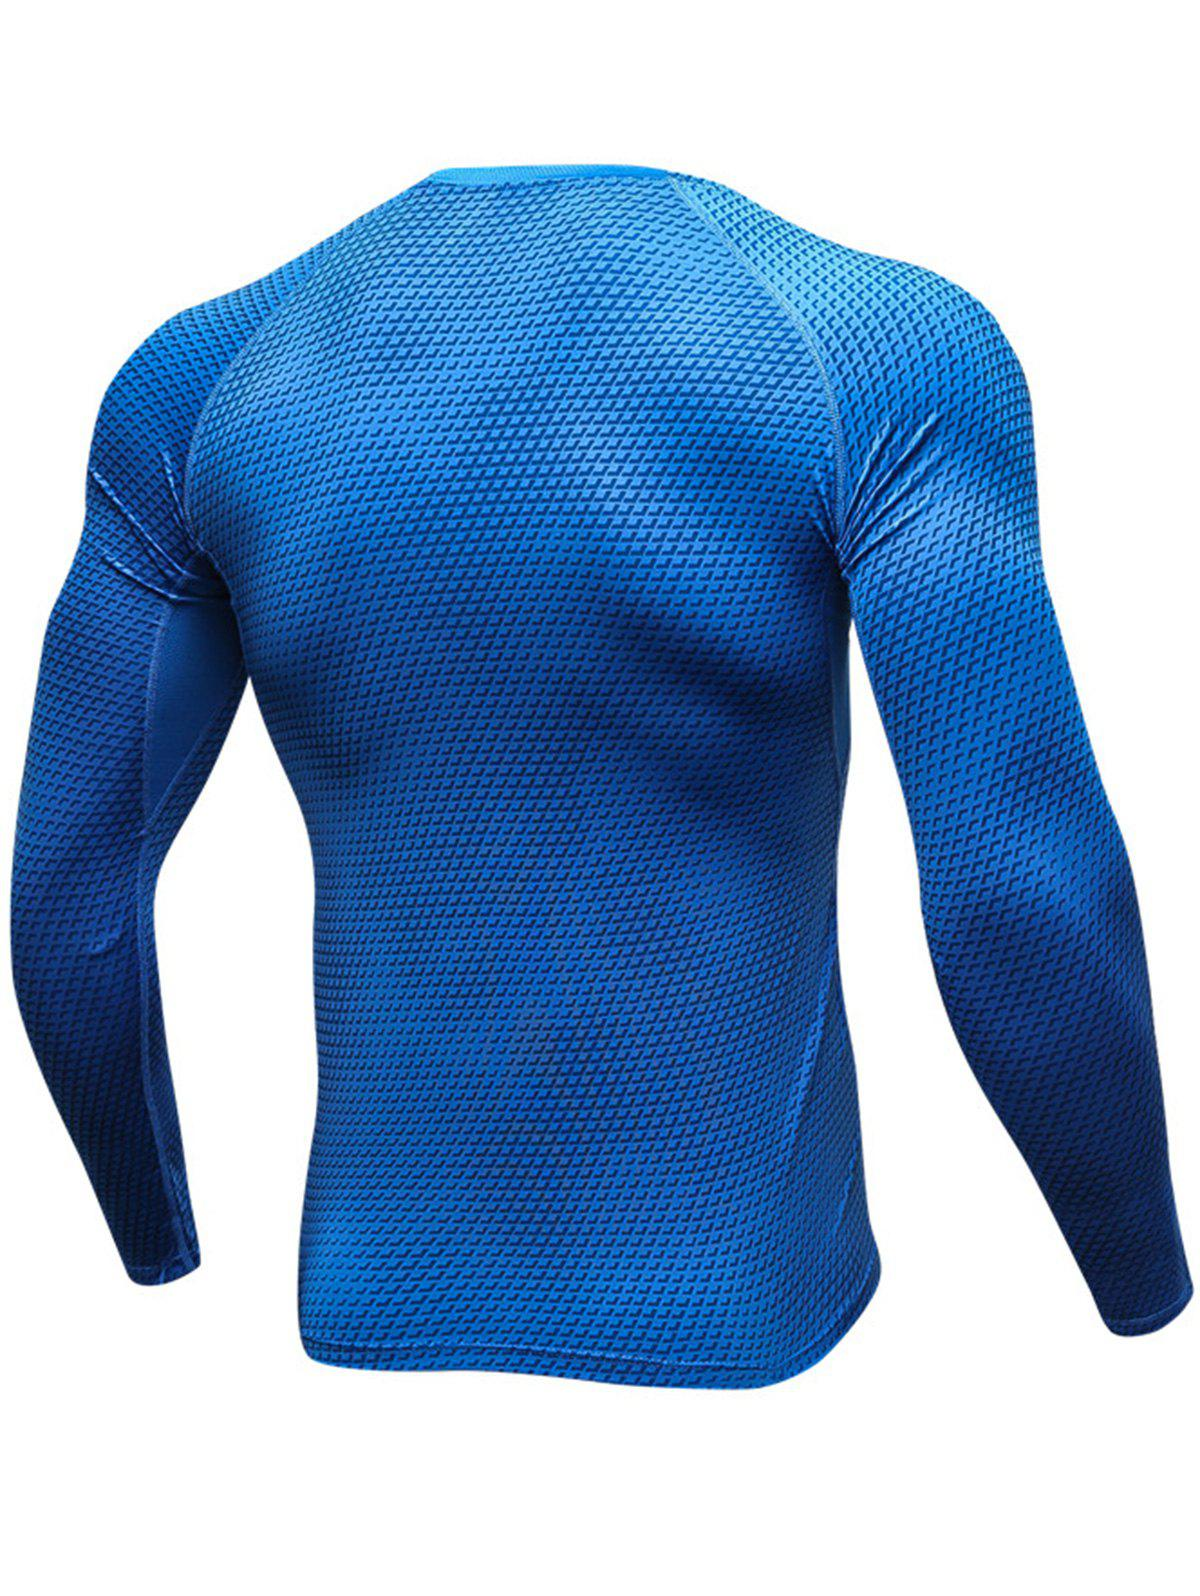 3D Geometric Print Stretchy Quick Dry T-shirt - BLUE XL